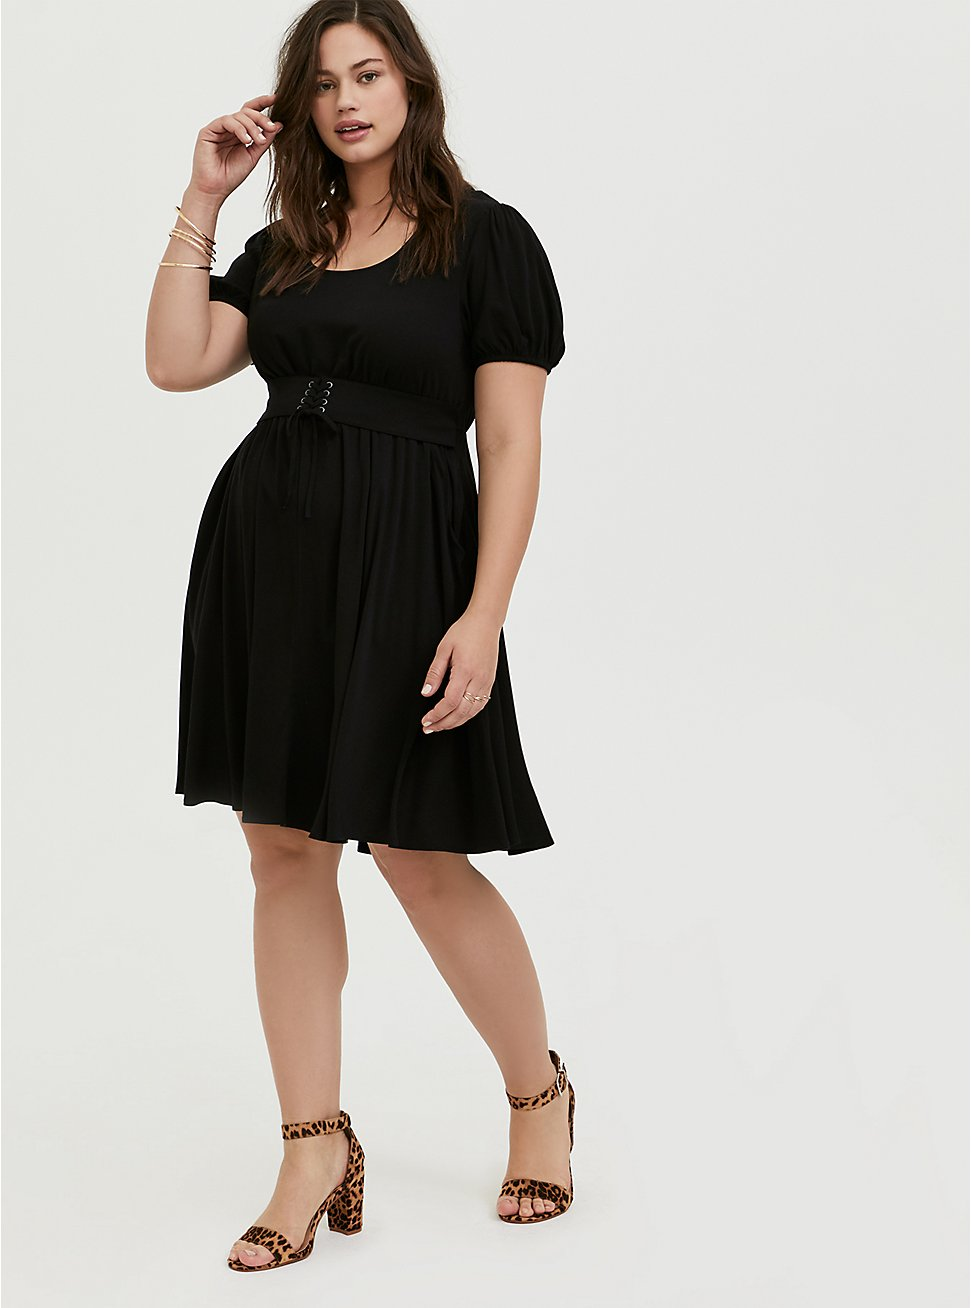 Black Challis Lace-Up Waist Skater Dress, DEEP BLACK, hi-res